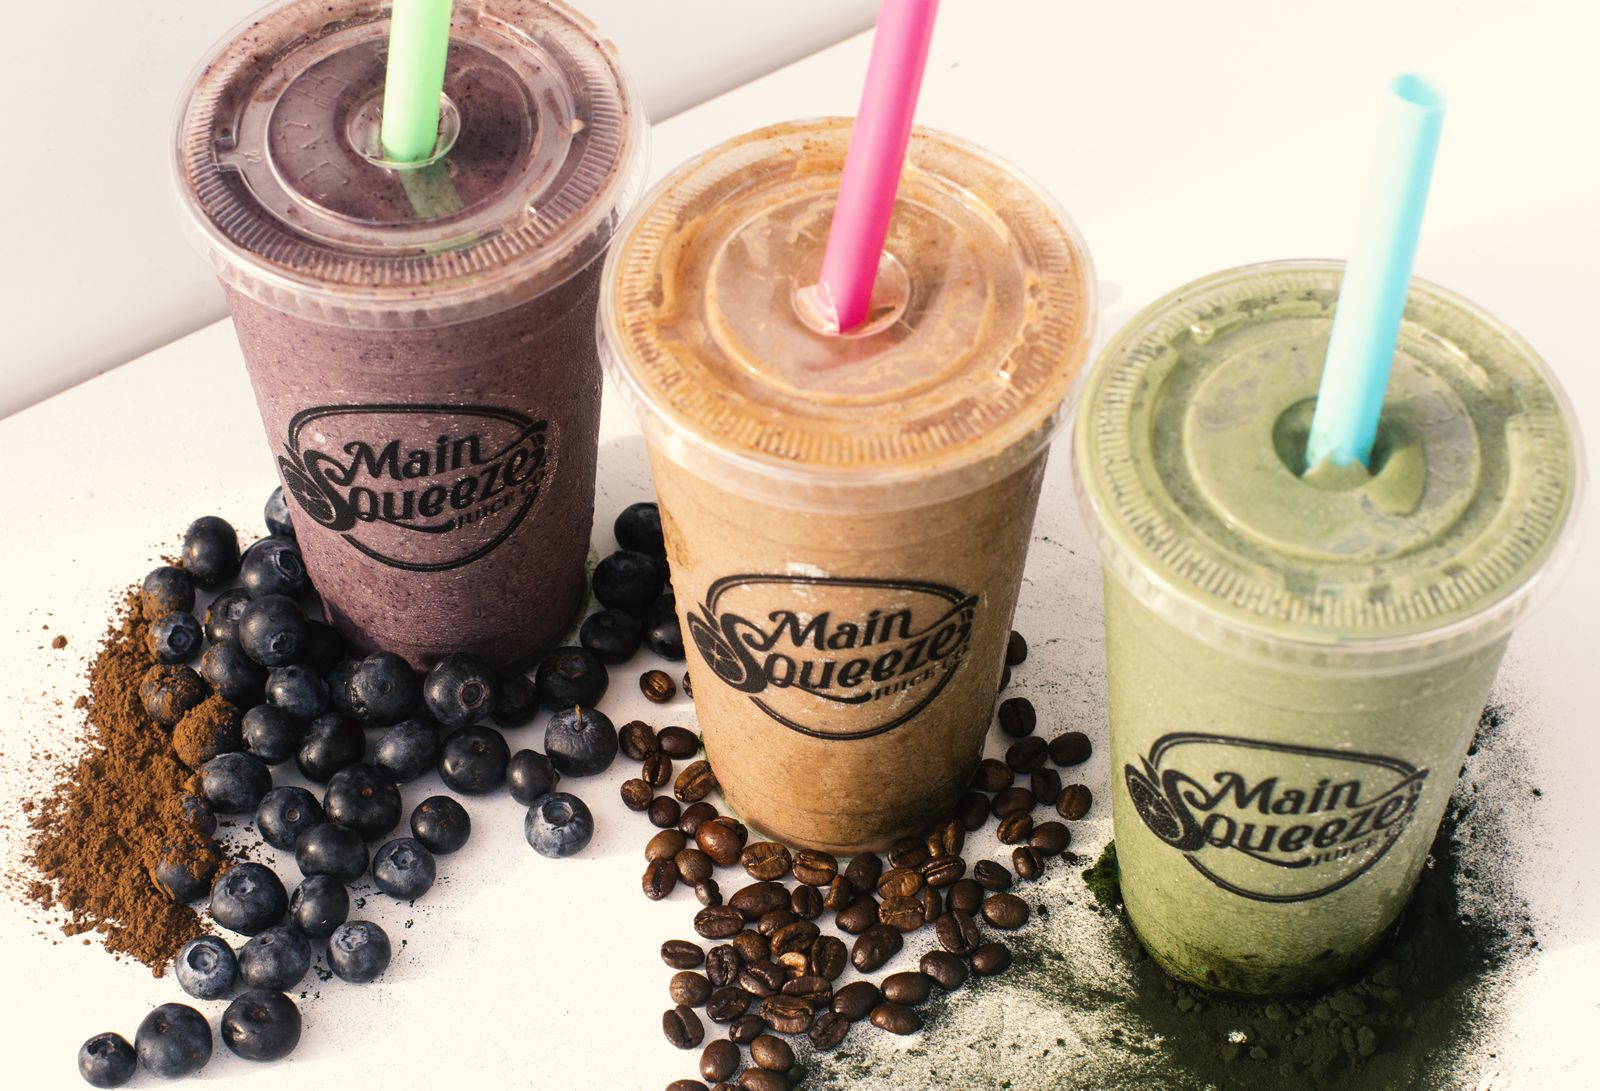 Main Squeeze Juice Co. Opens First-of-its-kind Location in Cypress